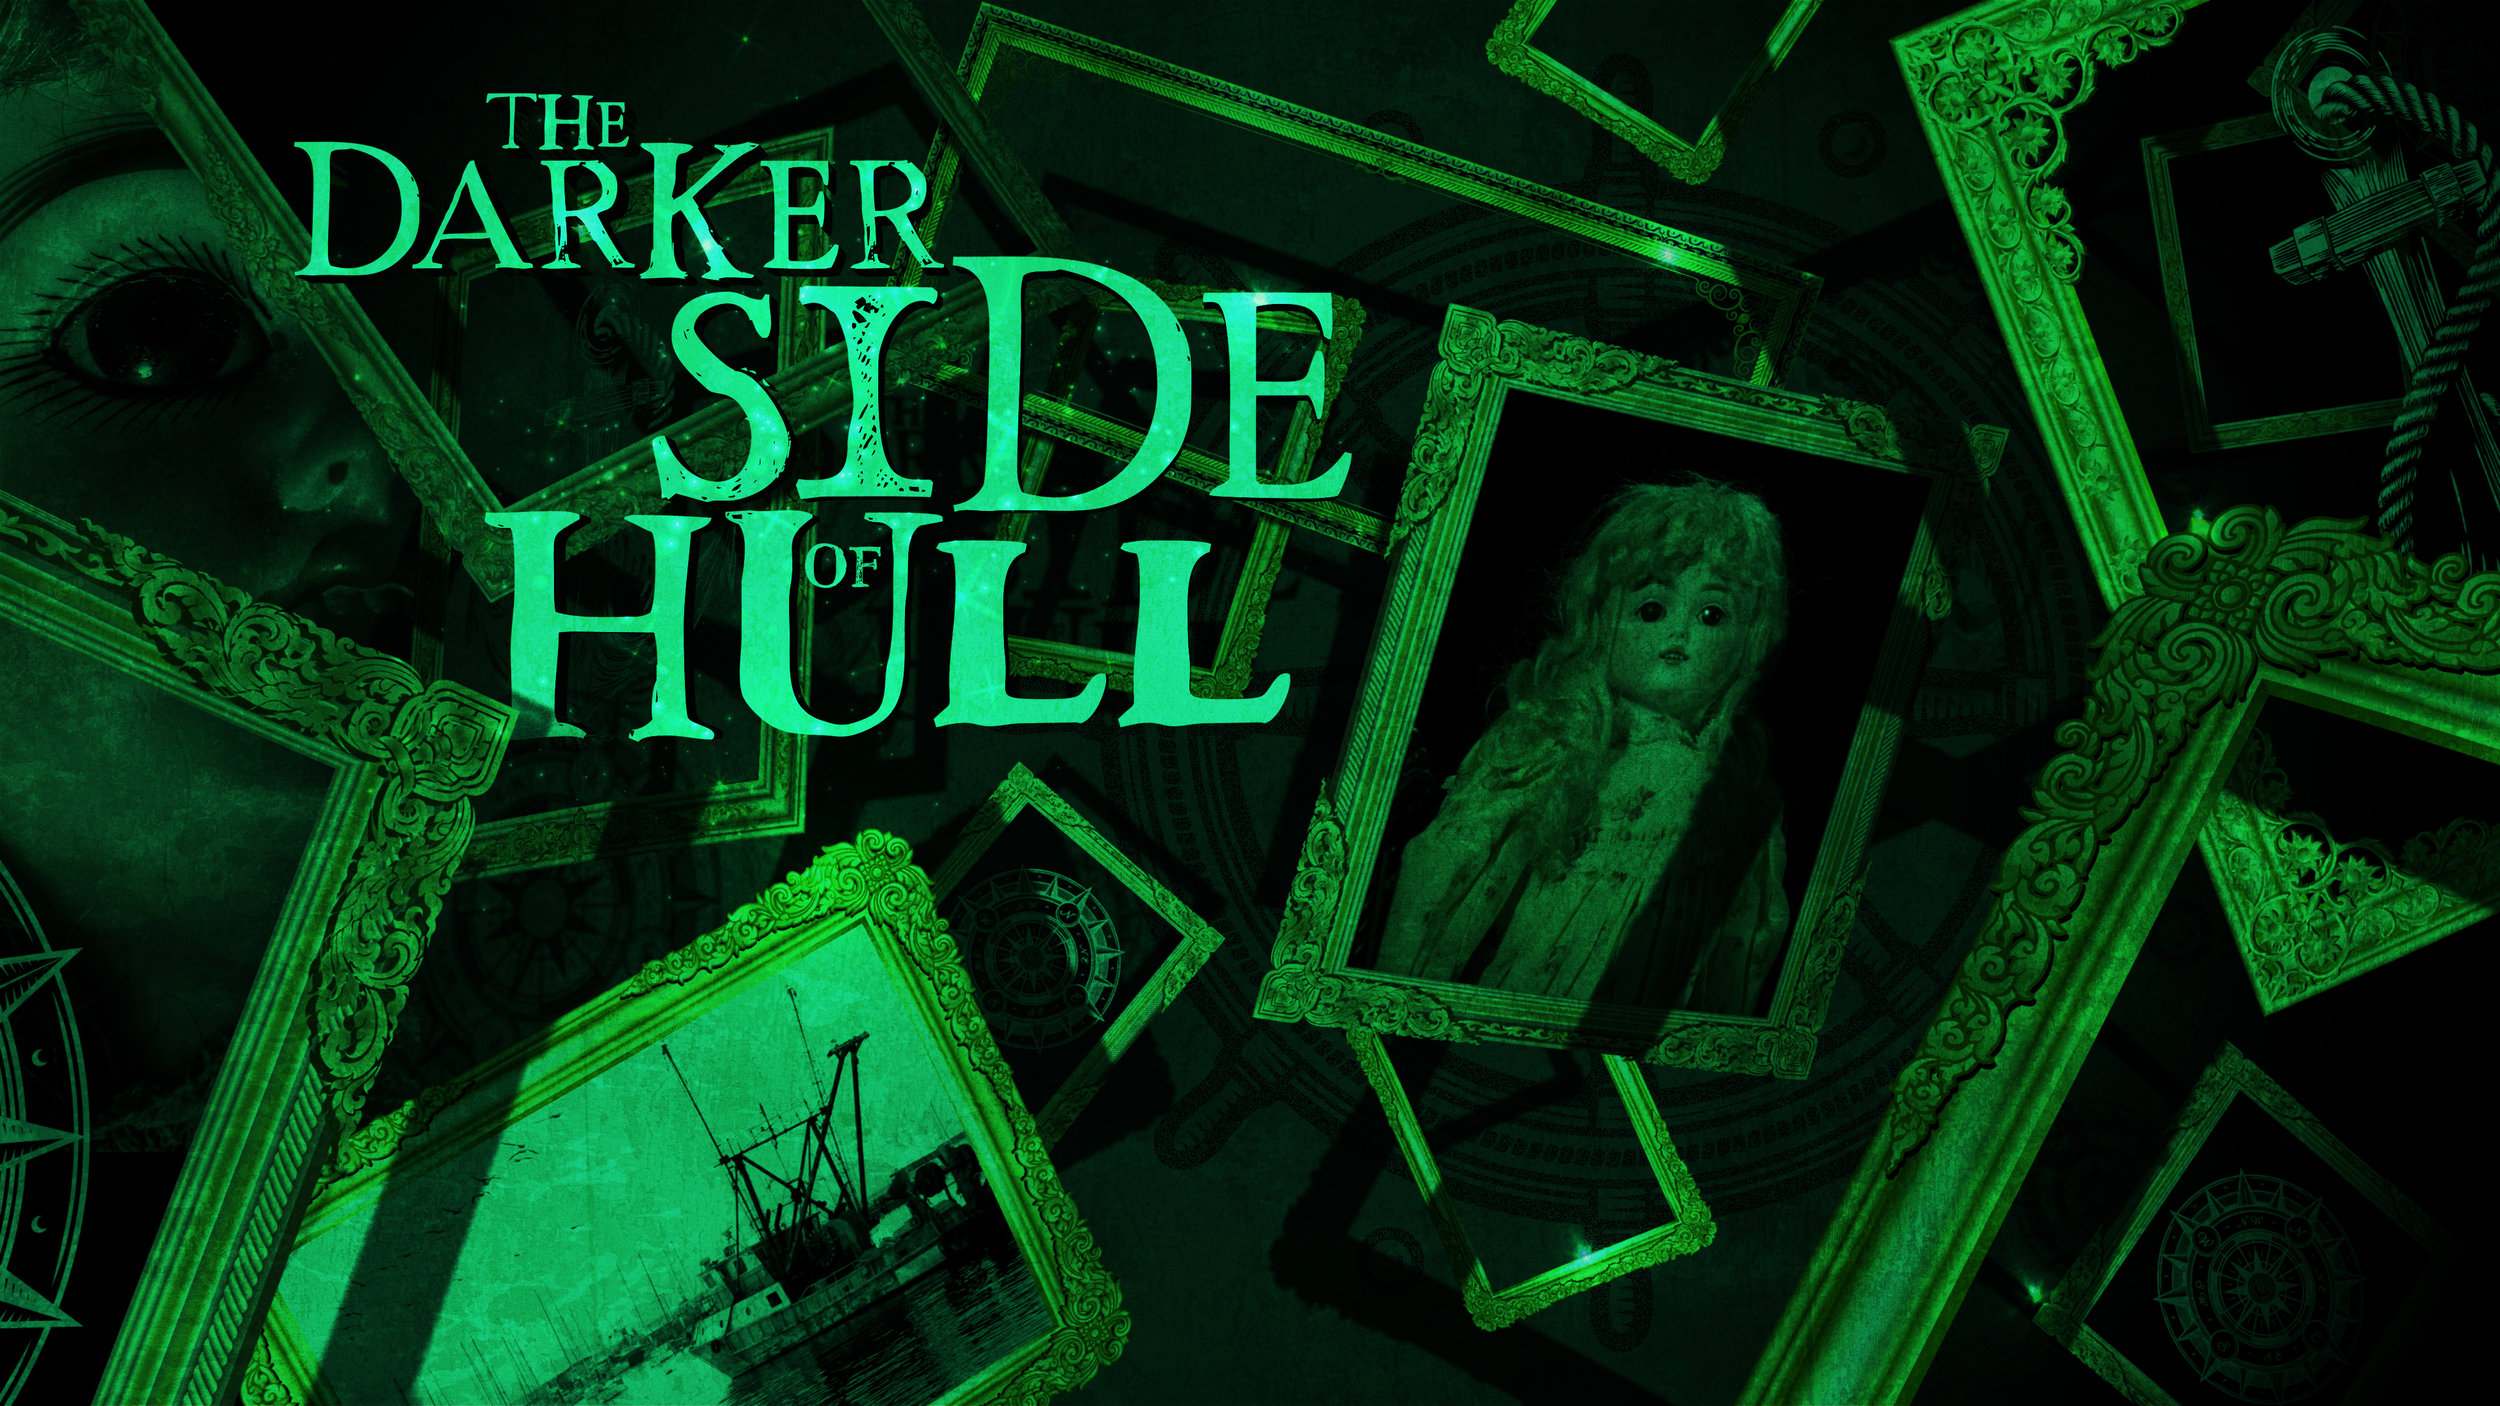 the darker side of hull - You are usually more than happy to take the night shift at Hull's History Museum but after the disappearance of your colleague it's certainly not where you want to be.Gather your team but be careful, you may discover more about Hull's dark past than you wanted to.